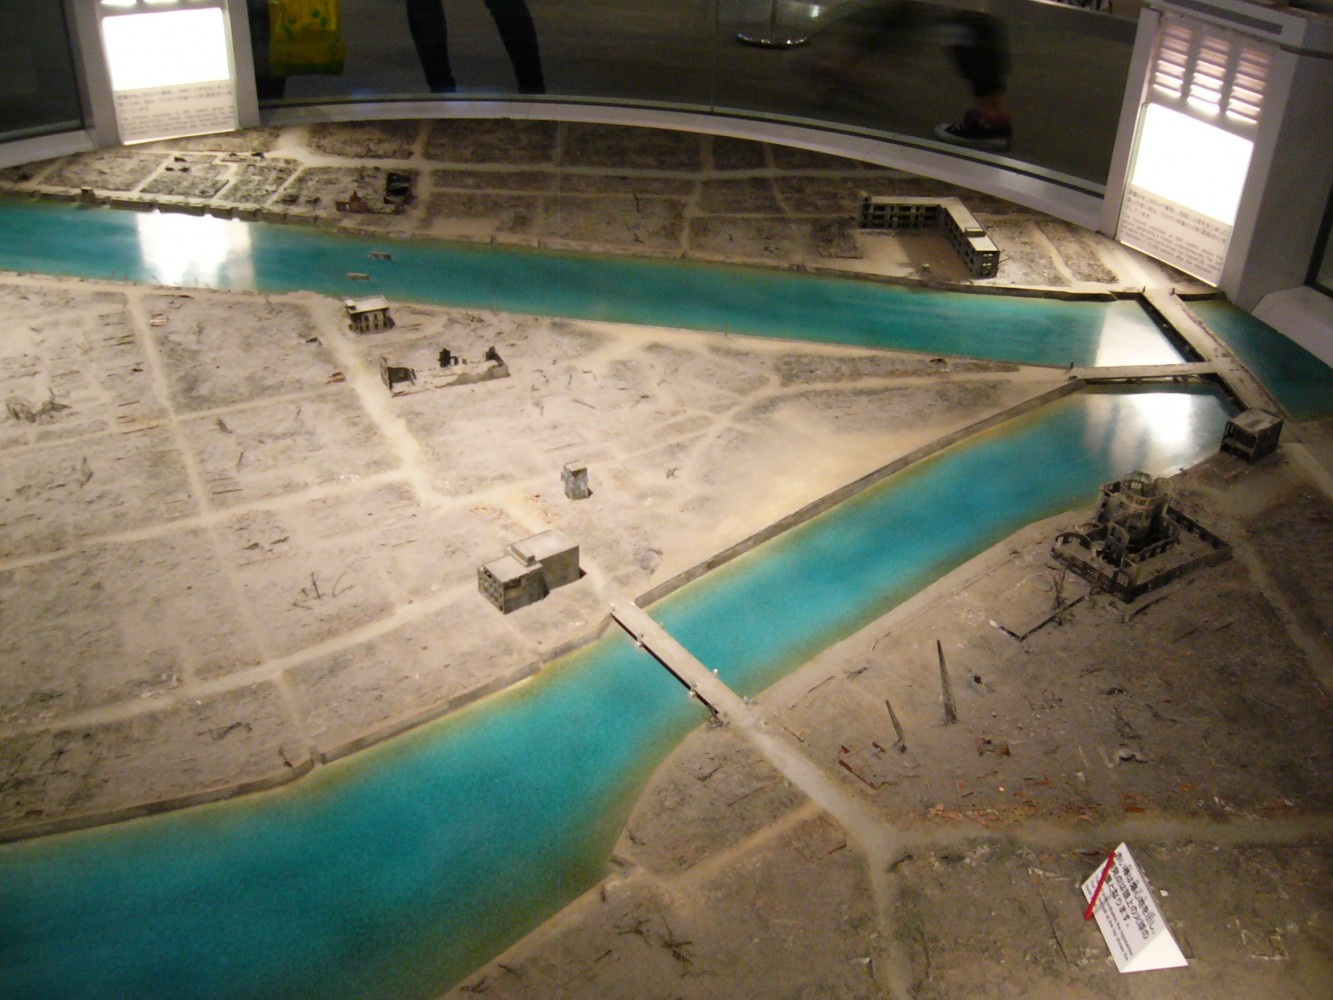 Model of Hiroshima City After 6 August 1945